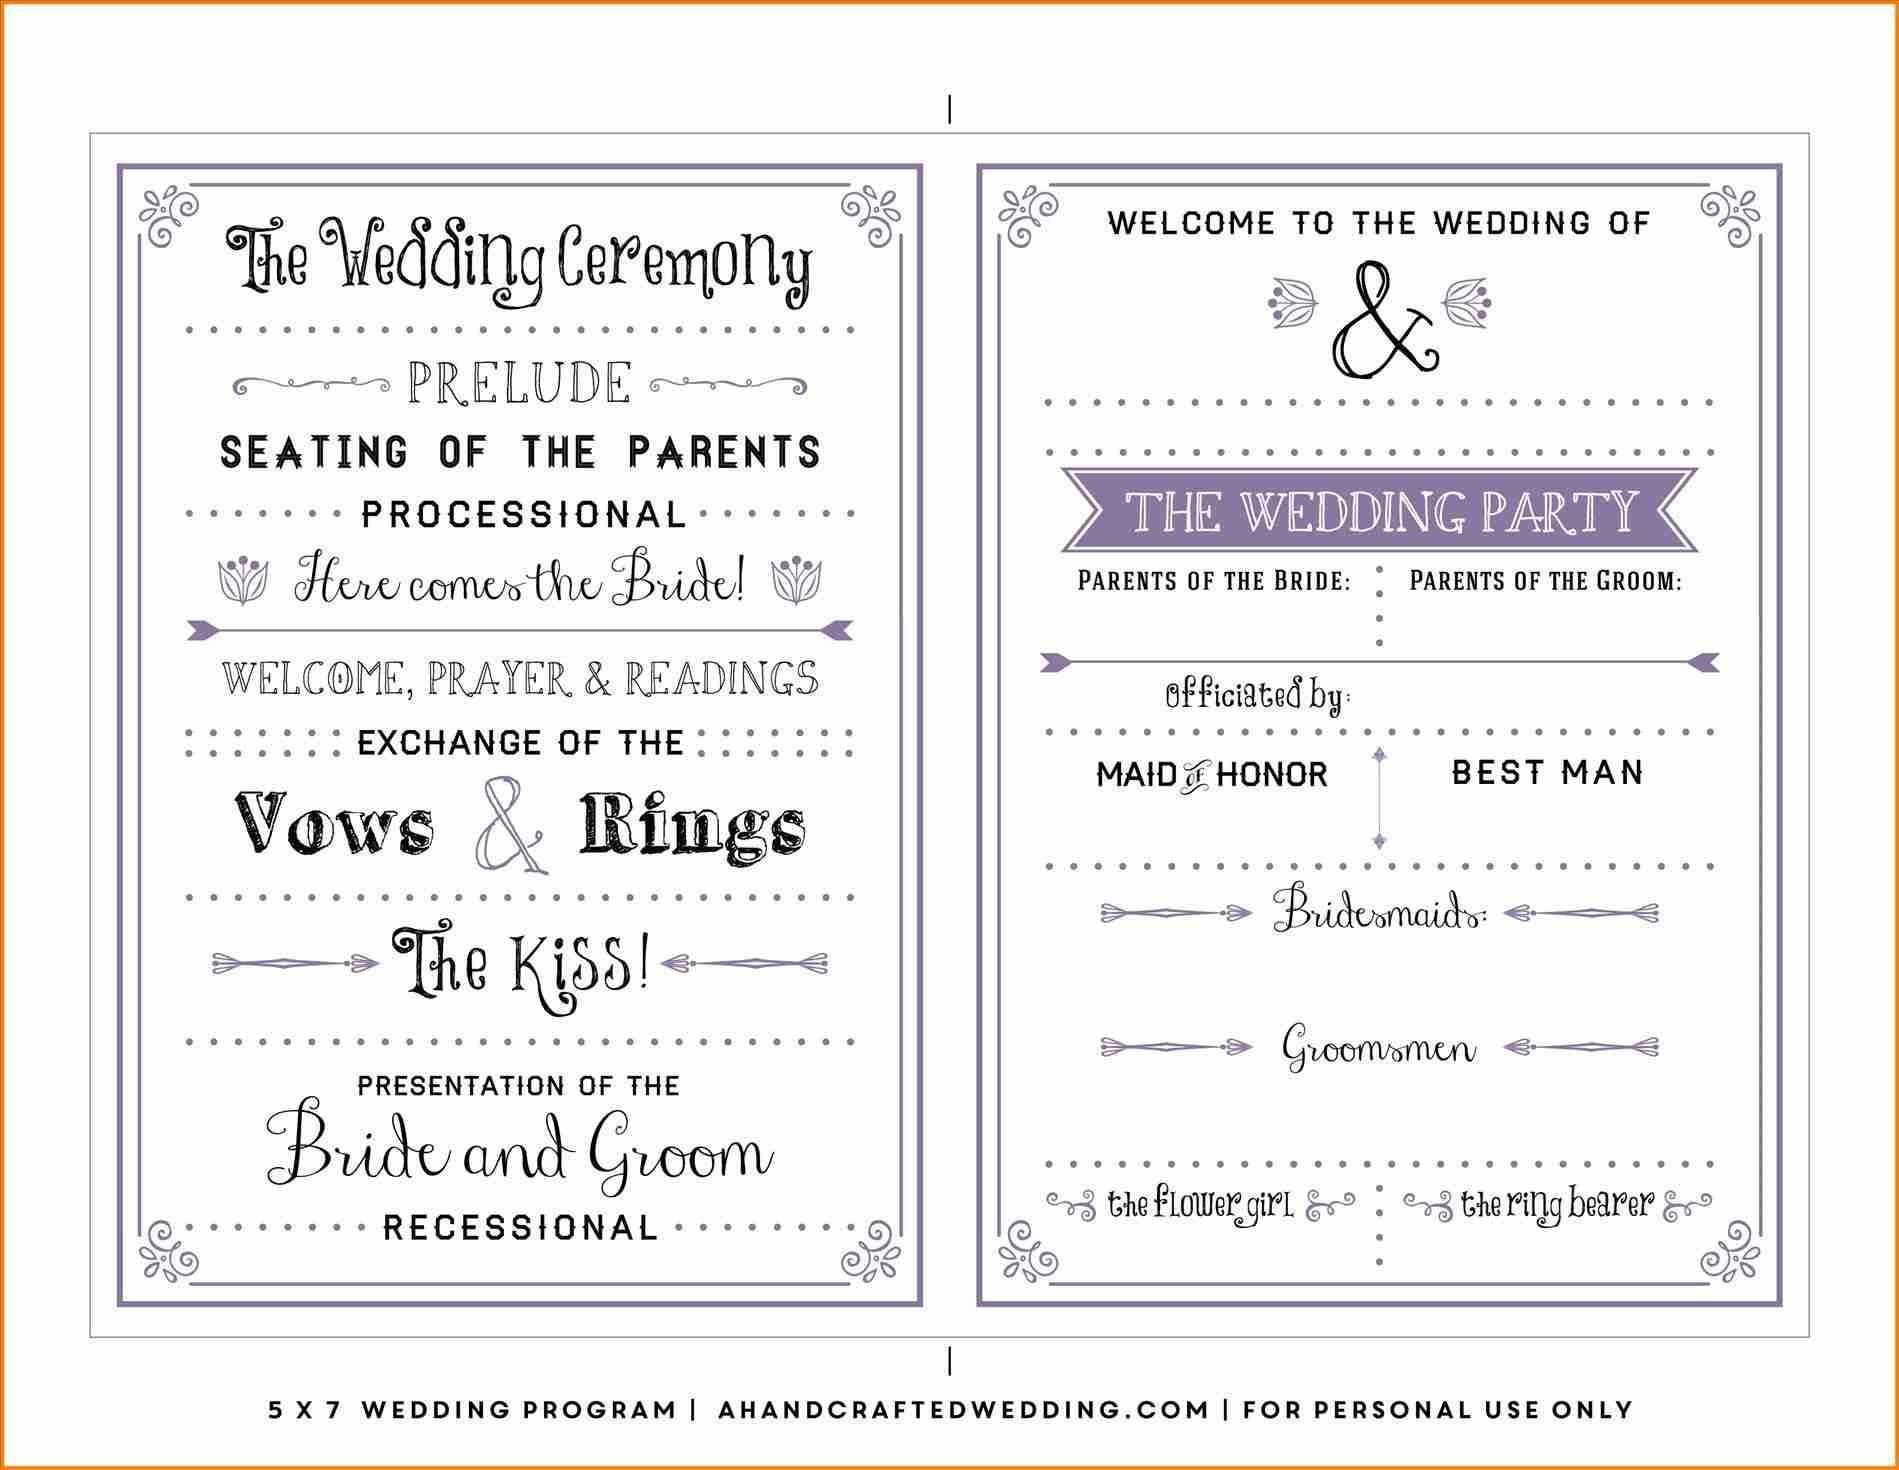 002 Incredible Wedding Template For Word Design  Free Invitation Indian Card M ProgramFull